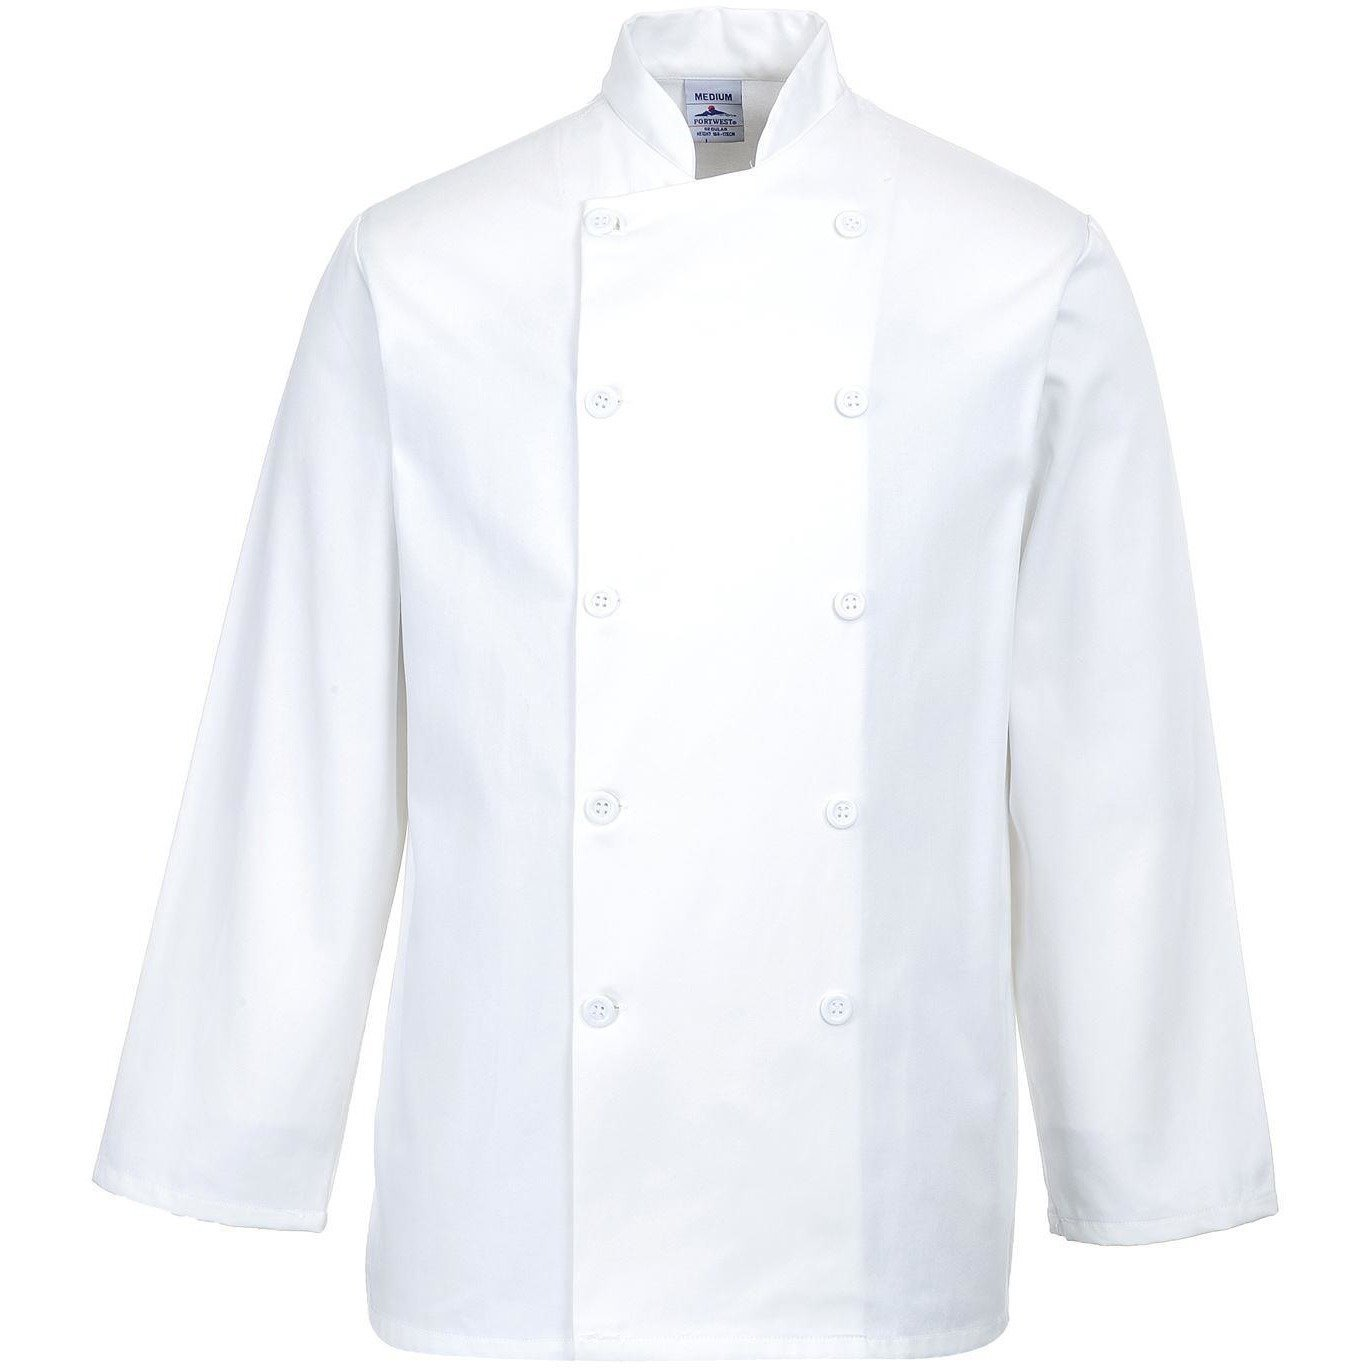 Portwest Sussex Chefs Jacket C836 - reid outdoors